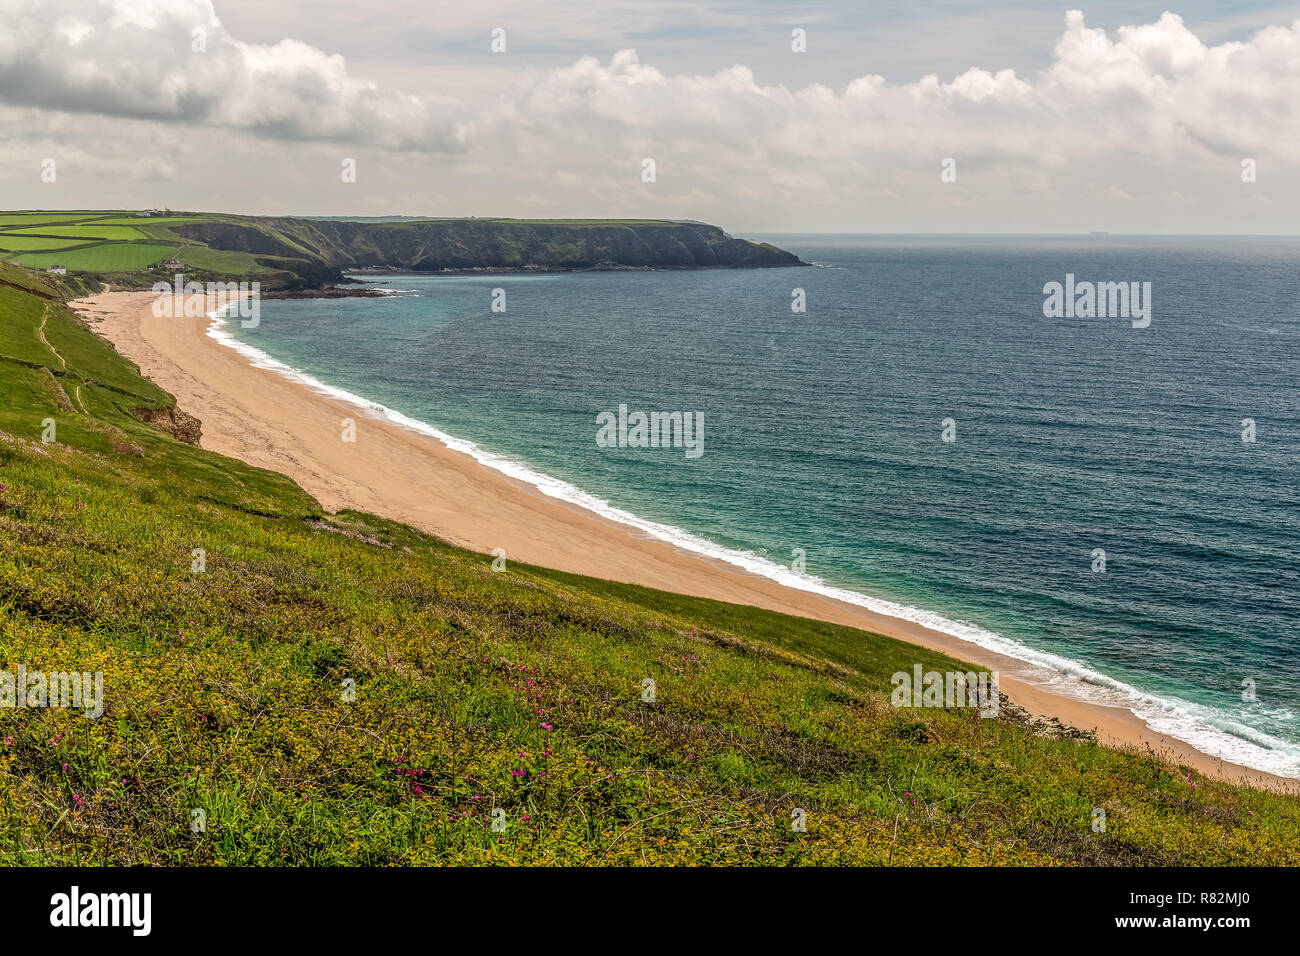 A long, deserted beach in Cornwall, England. - Stock Image